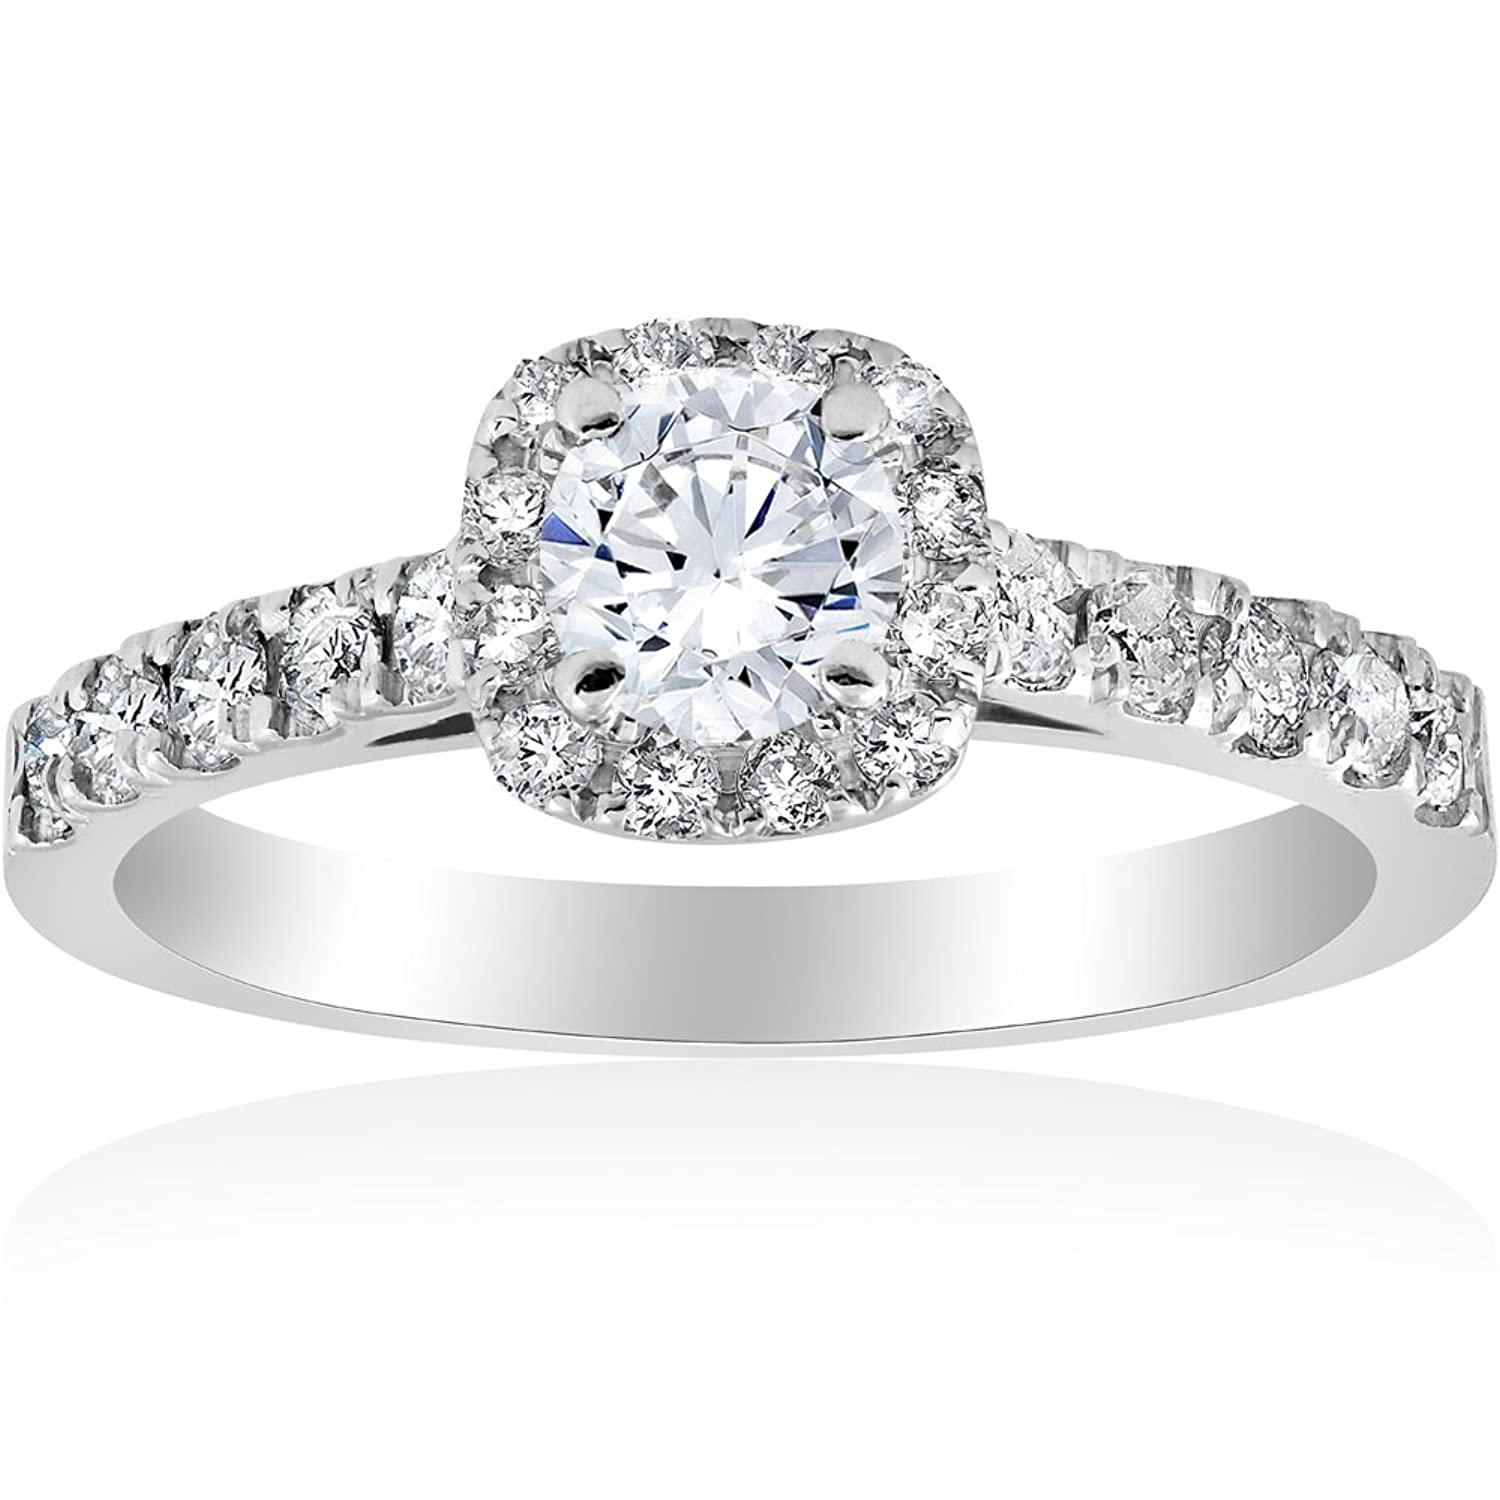 ring certified diamond halo engagement igi white gold w usa ctw products rings